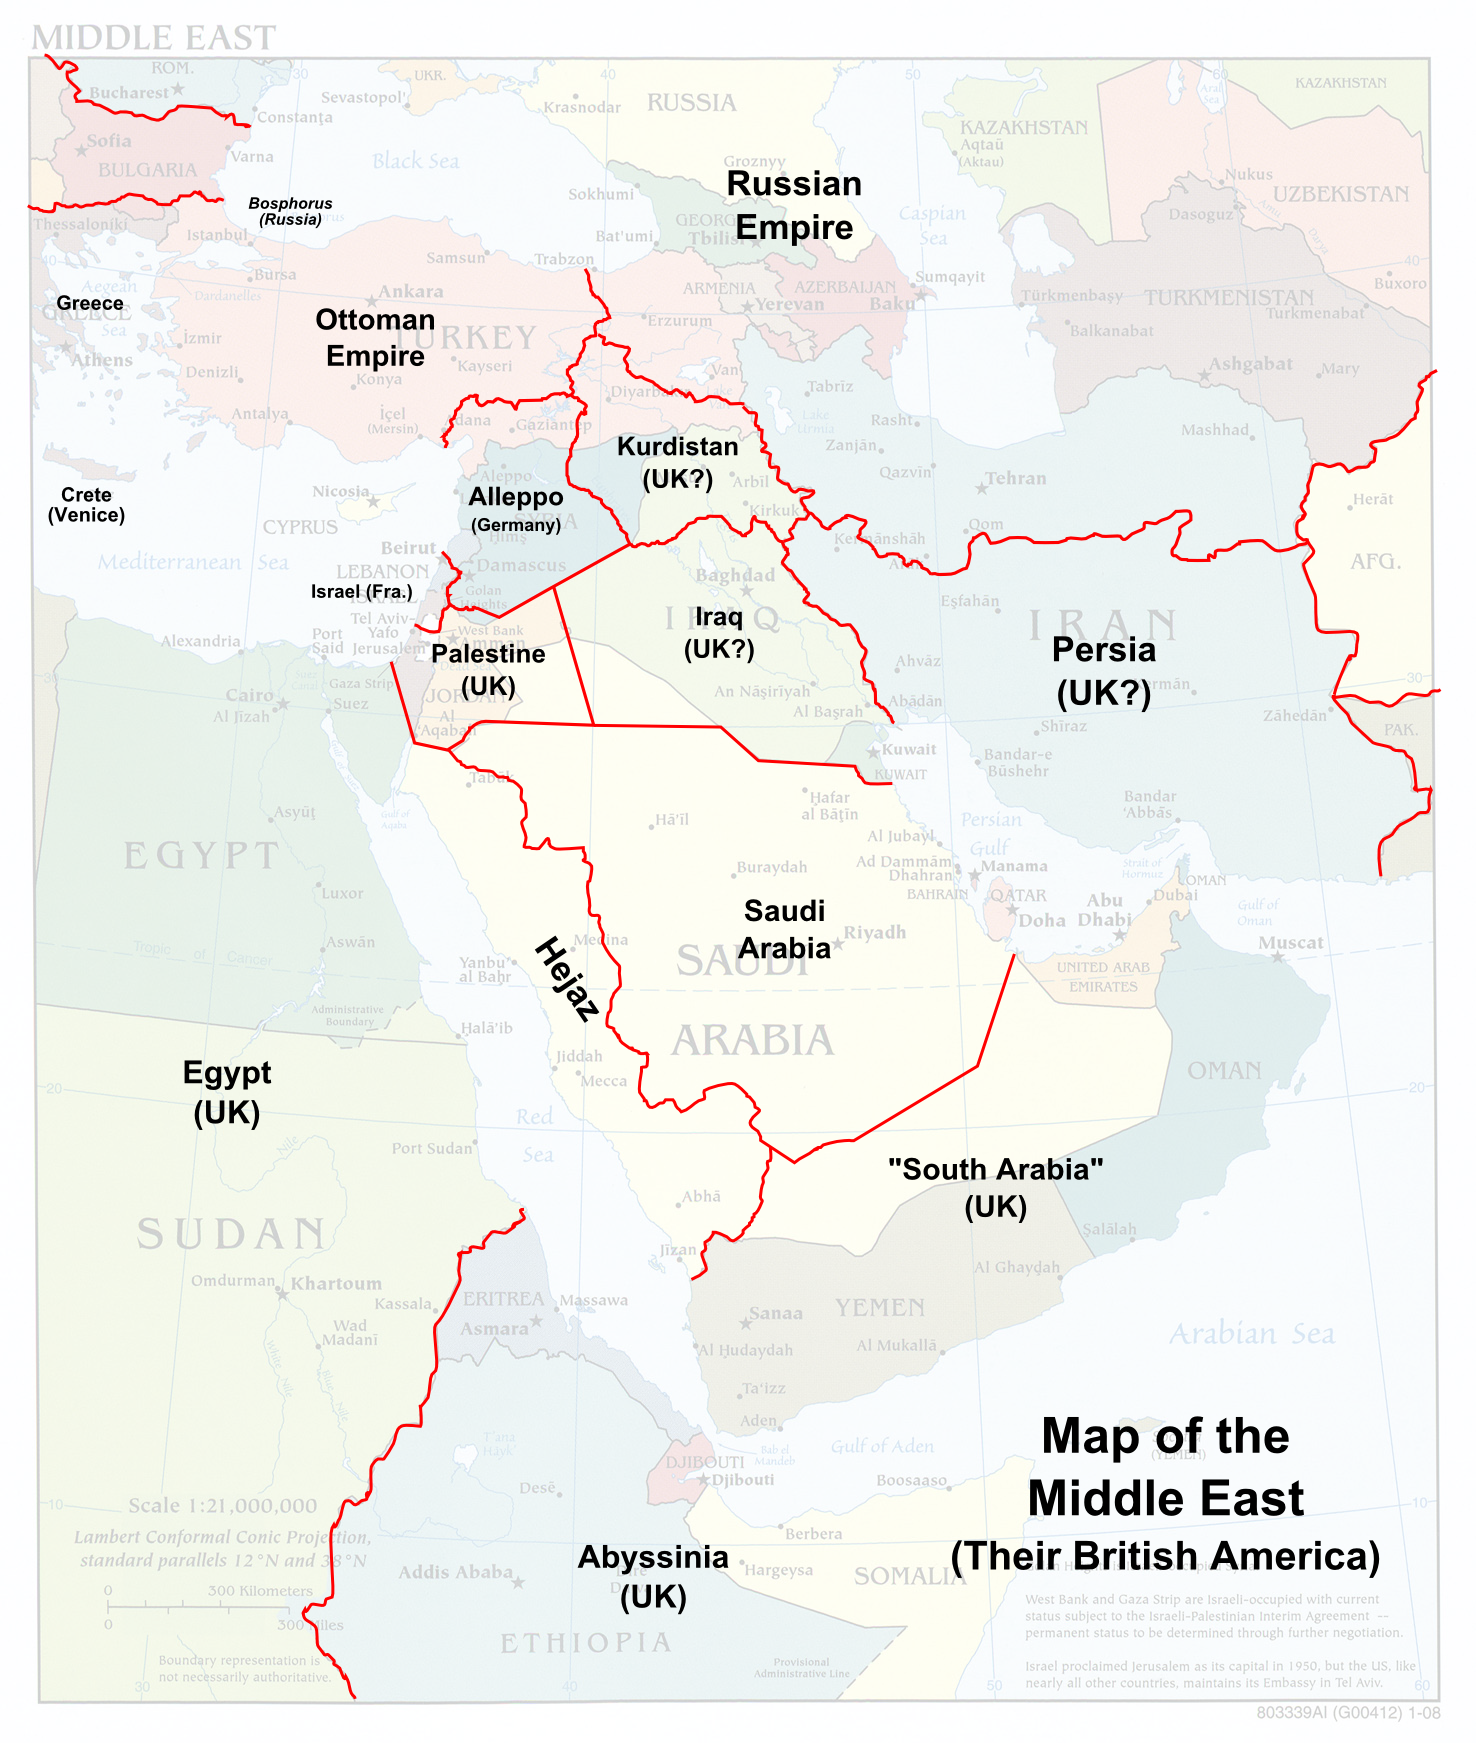 Image map of the middle east their british americag map of the middle east their british americag gumiabroncs Gallery